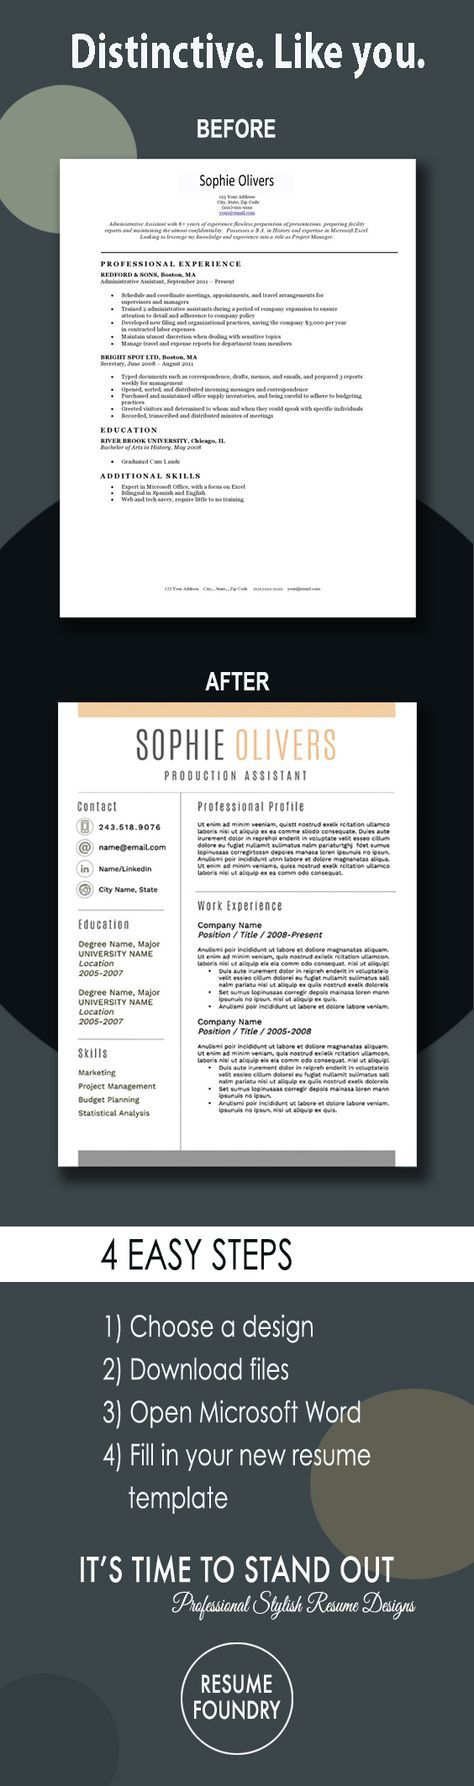 Stylish and Modern Resume Template, 1-3 Page Resume + Cover Letter + ...